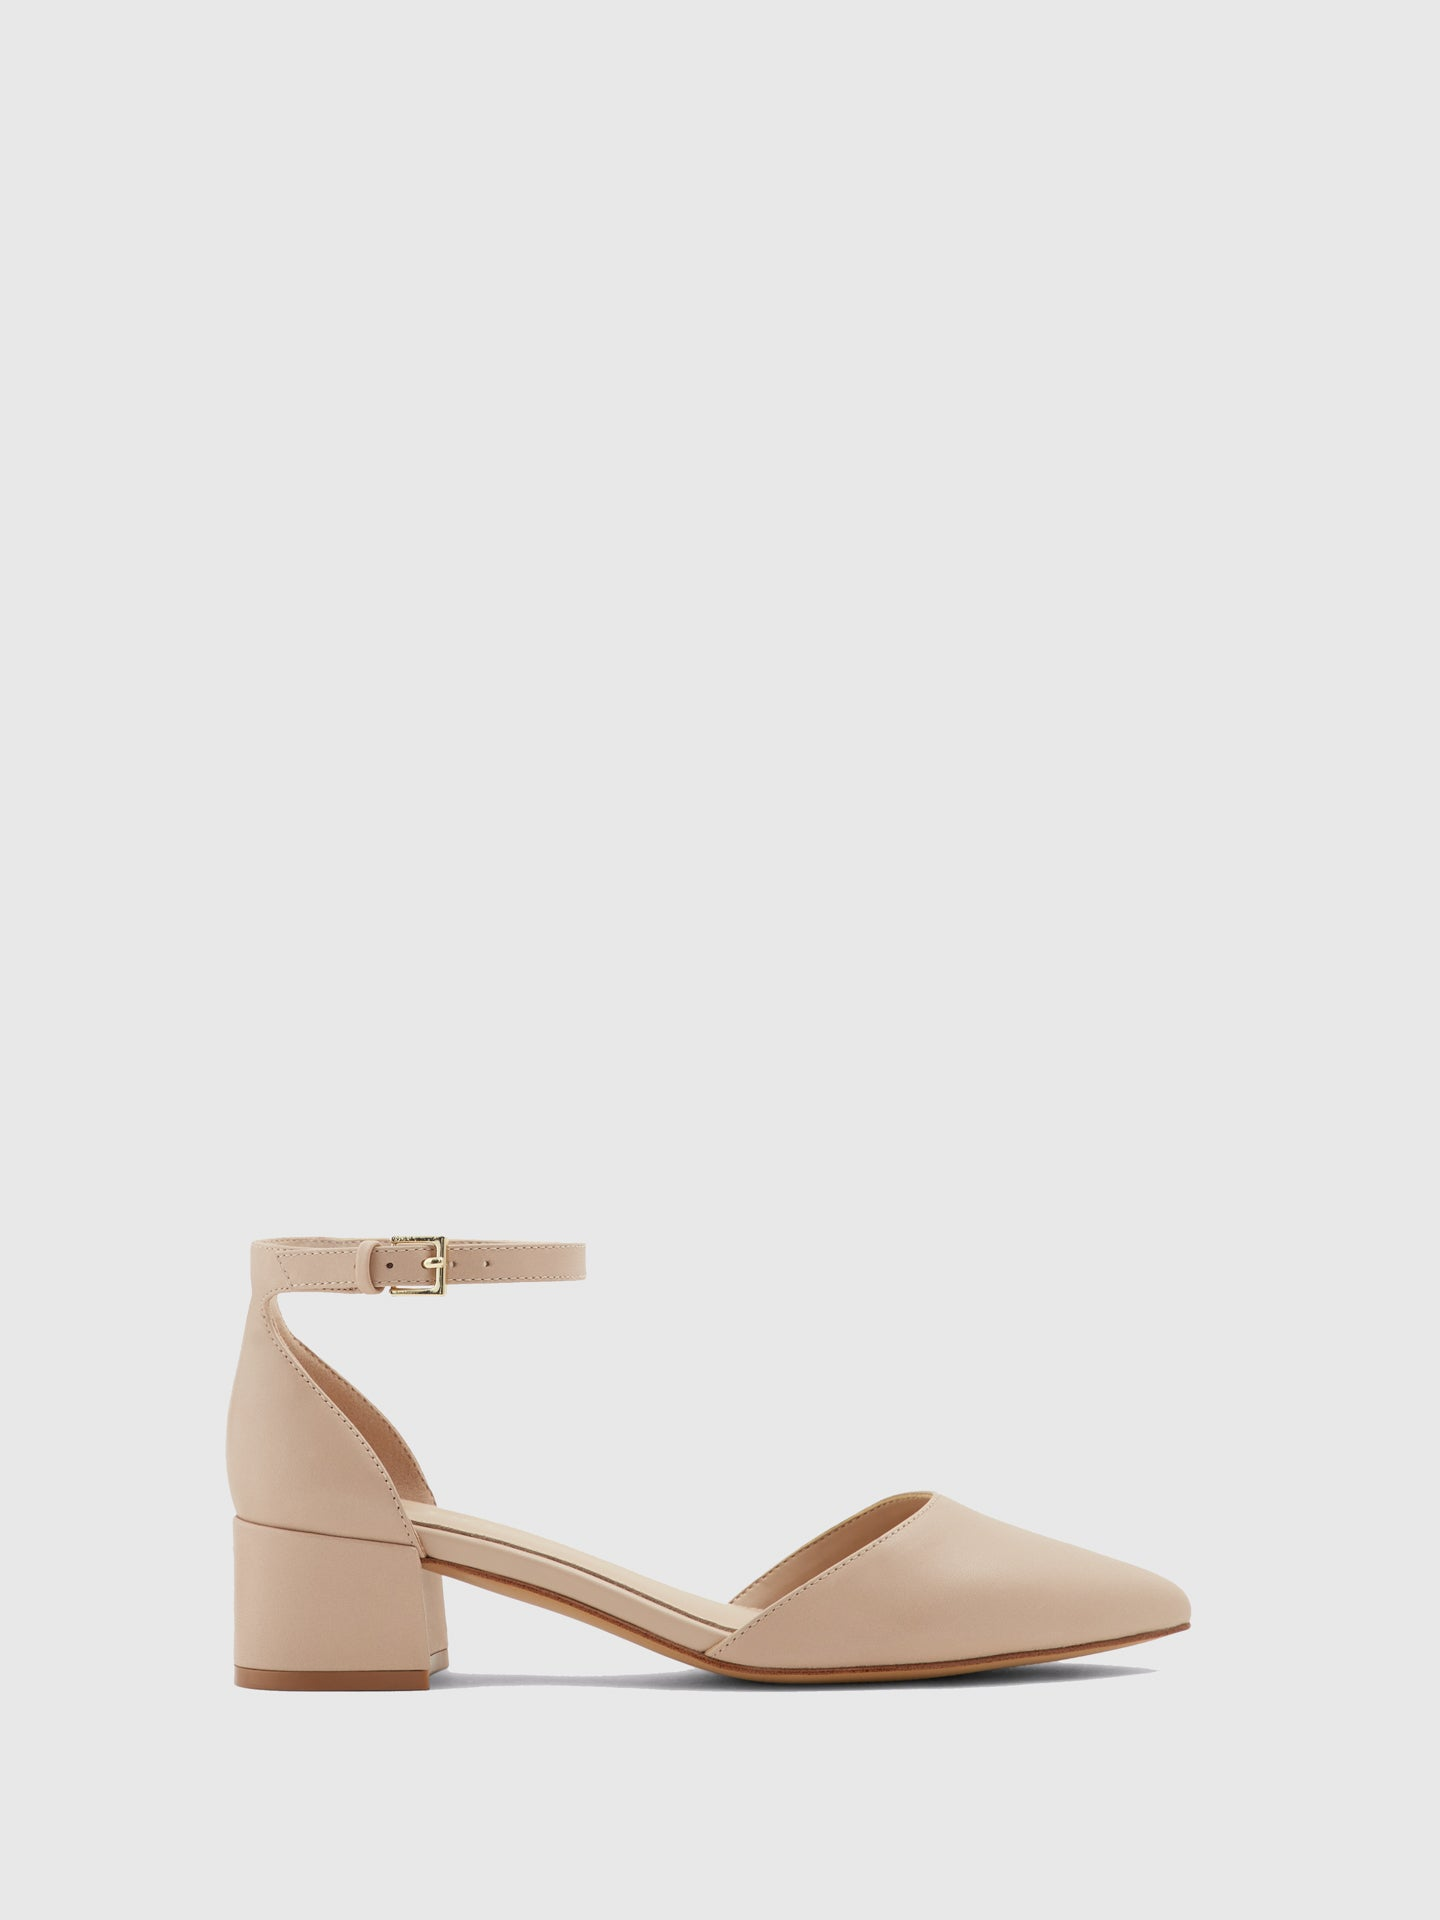 Aldo Wheat Ankle Strap Shoes